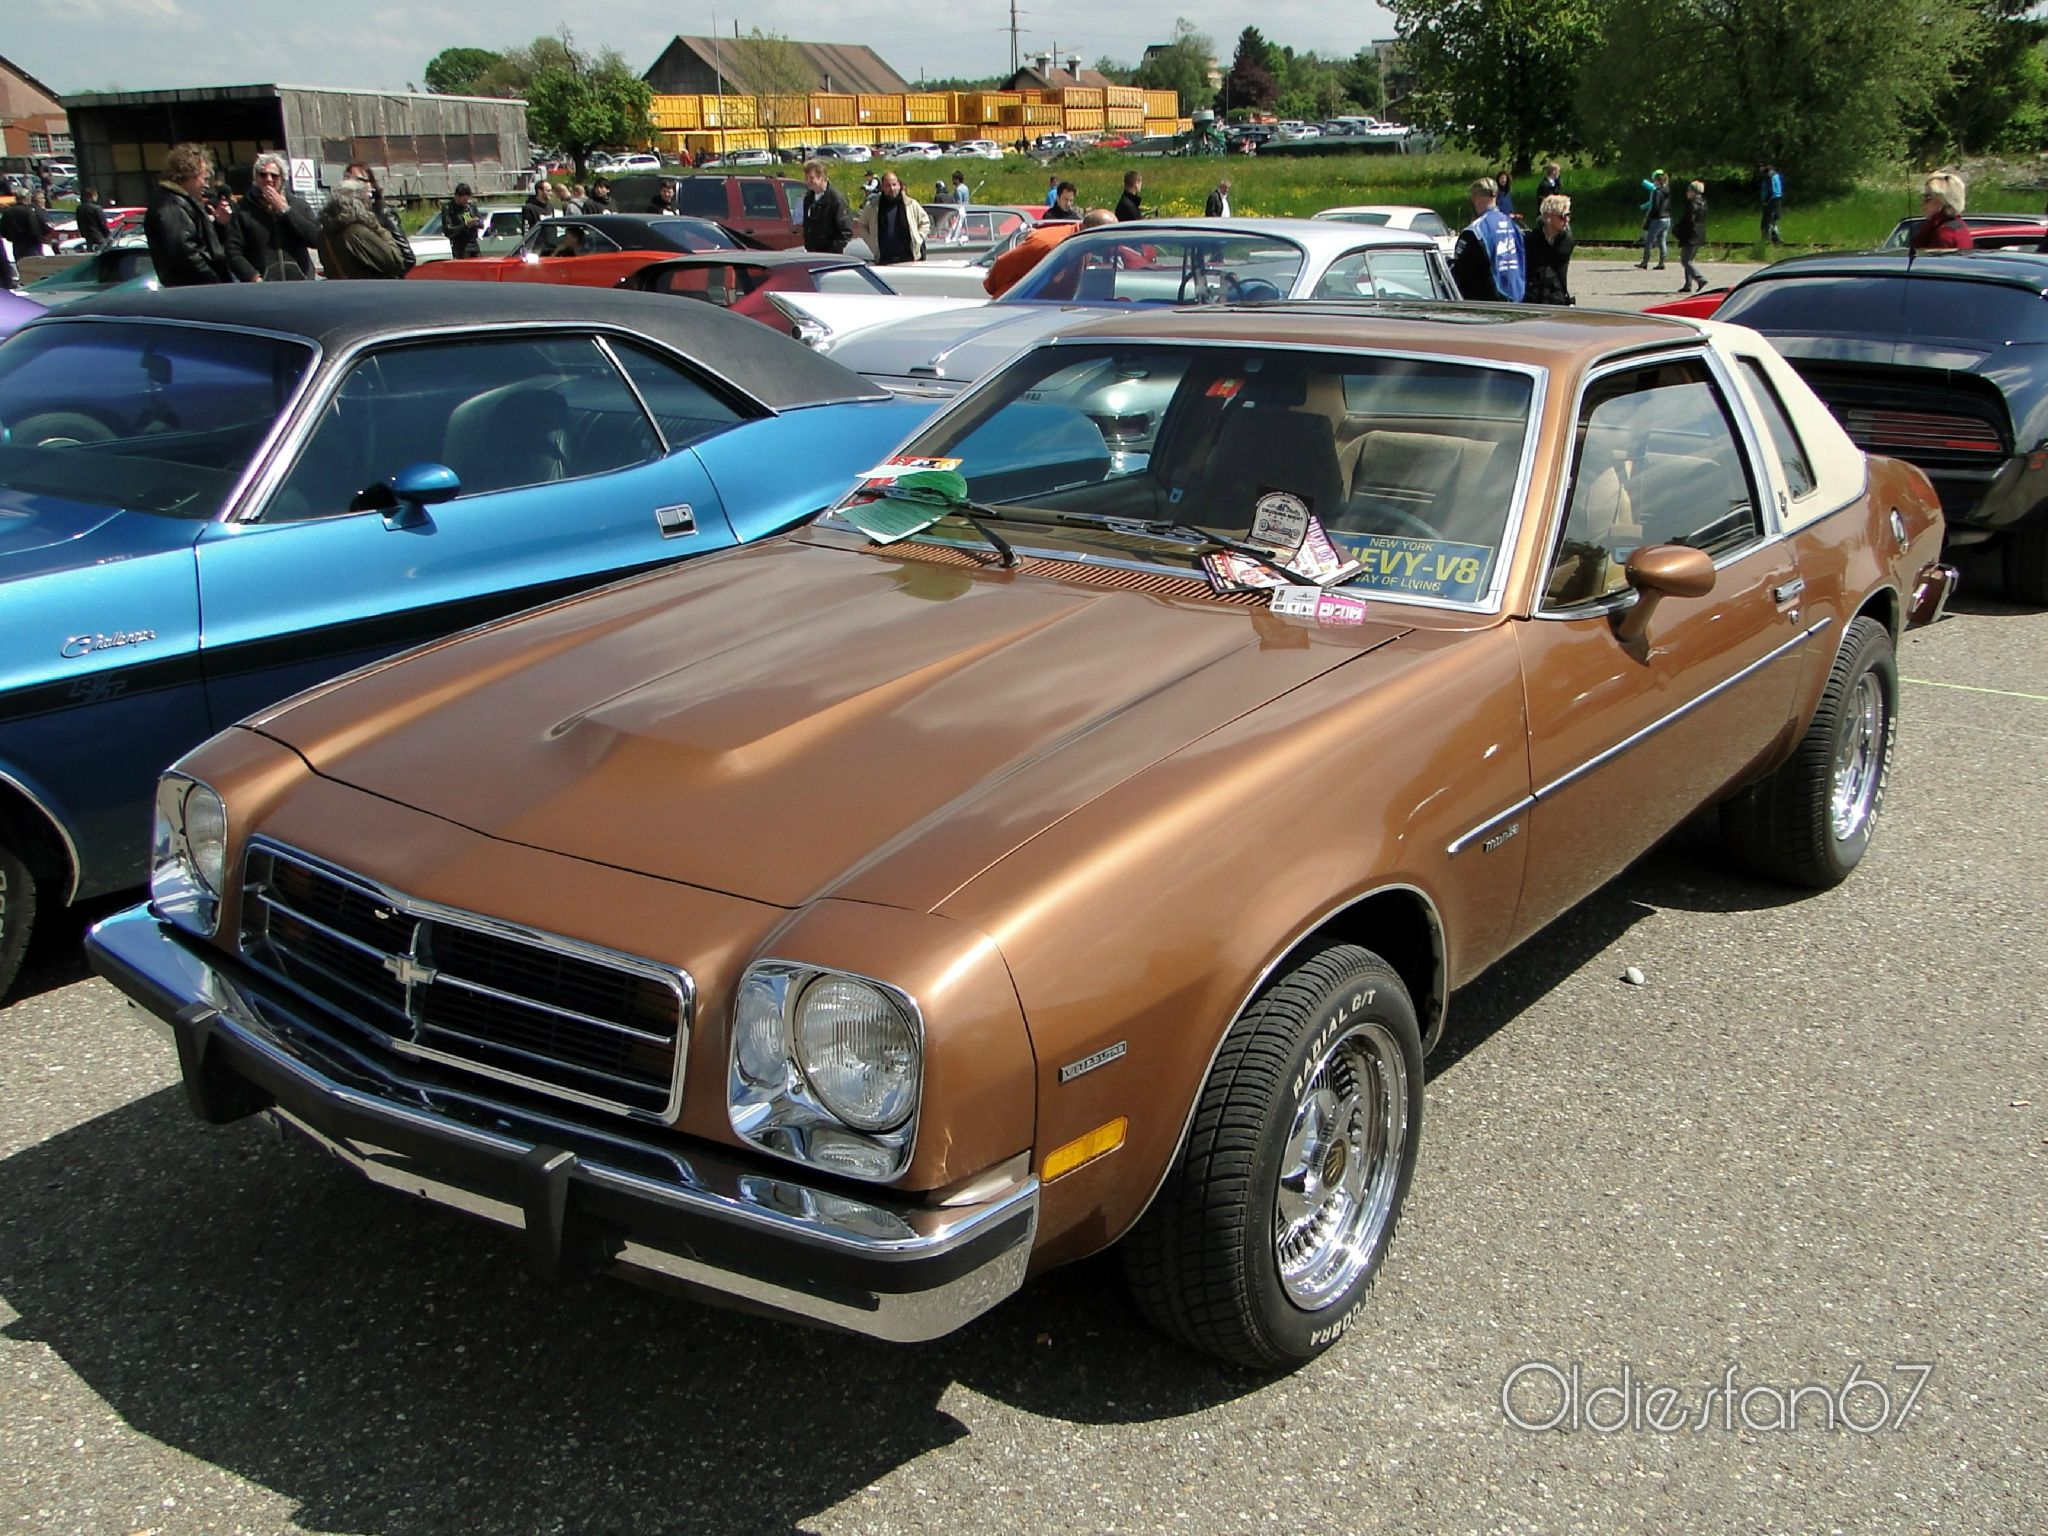 1979 Chevrolet Monza Coupe Cars Trucks Classic Cars Chevrolet